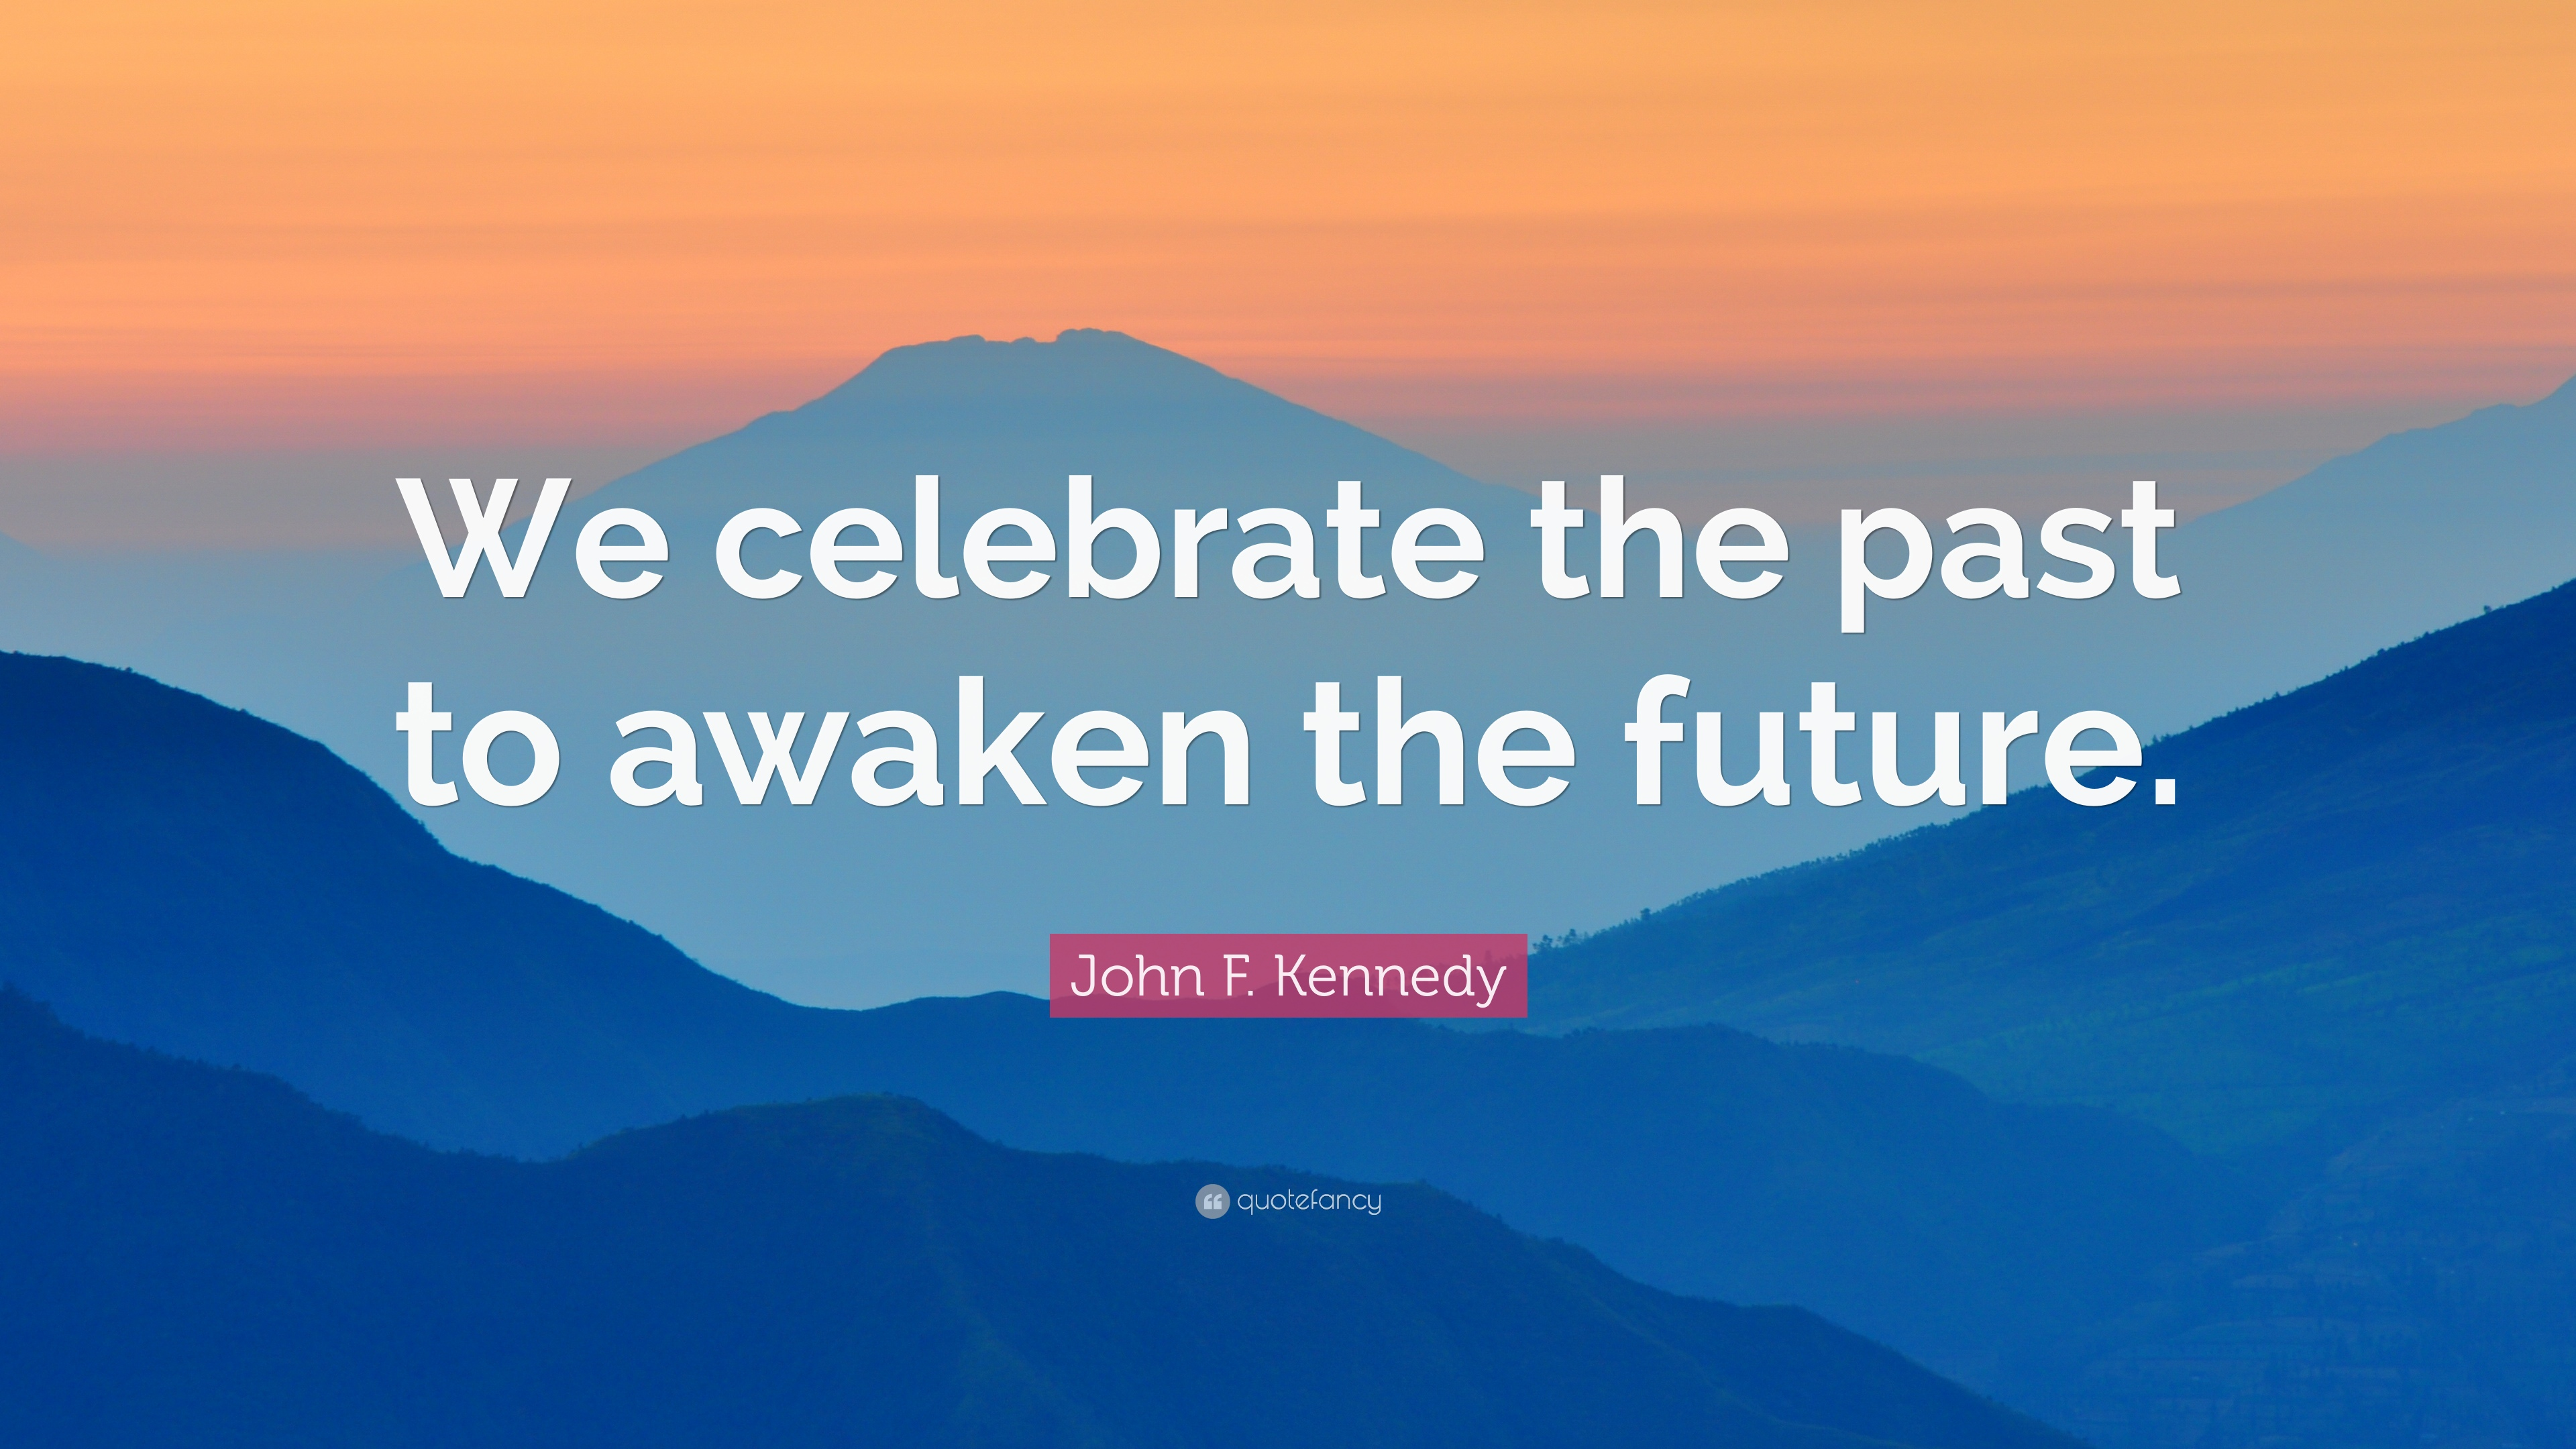 john f kennedy quote wallpapers - photo #48